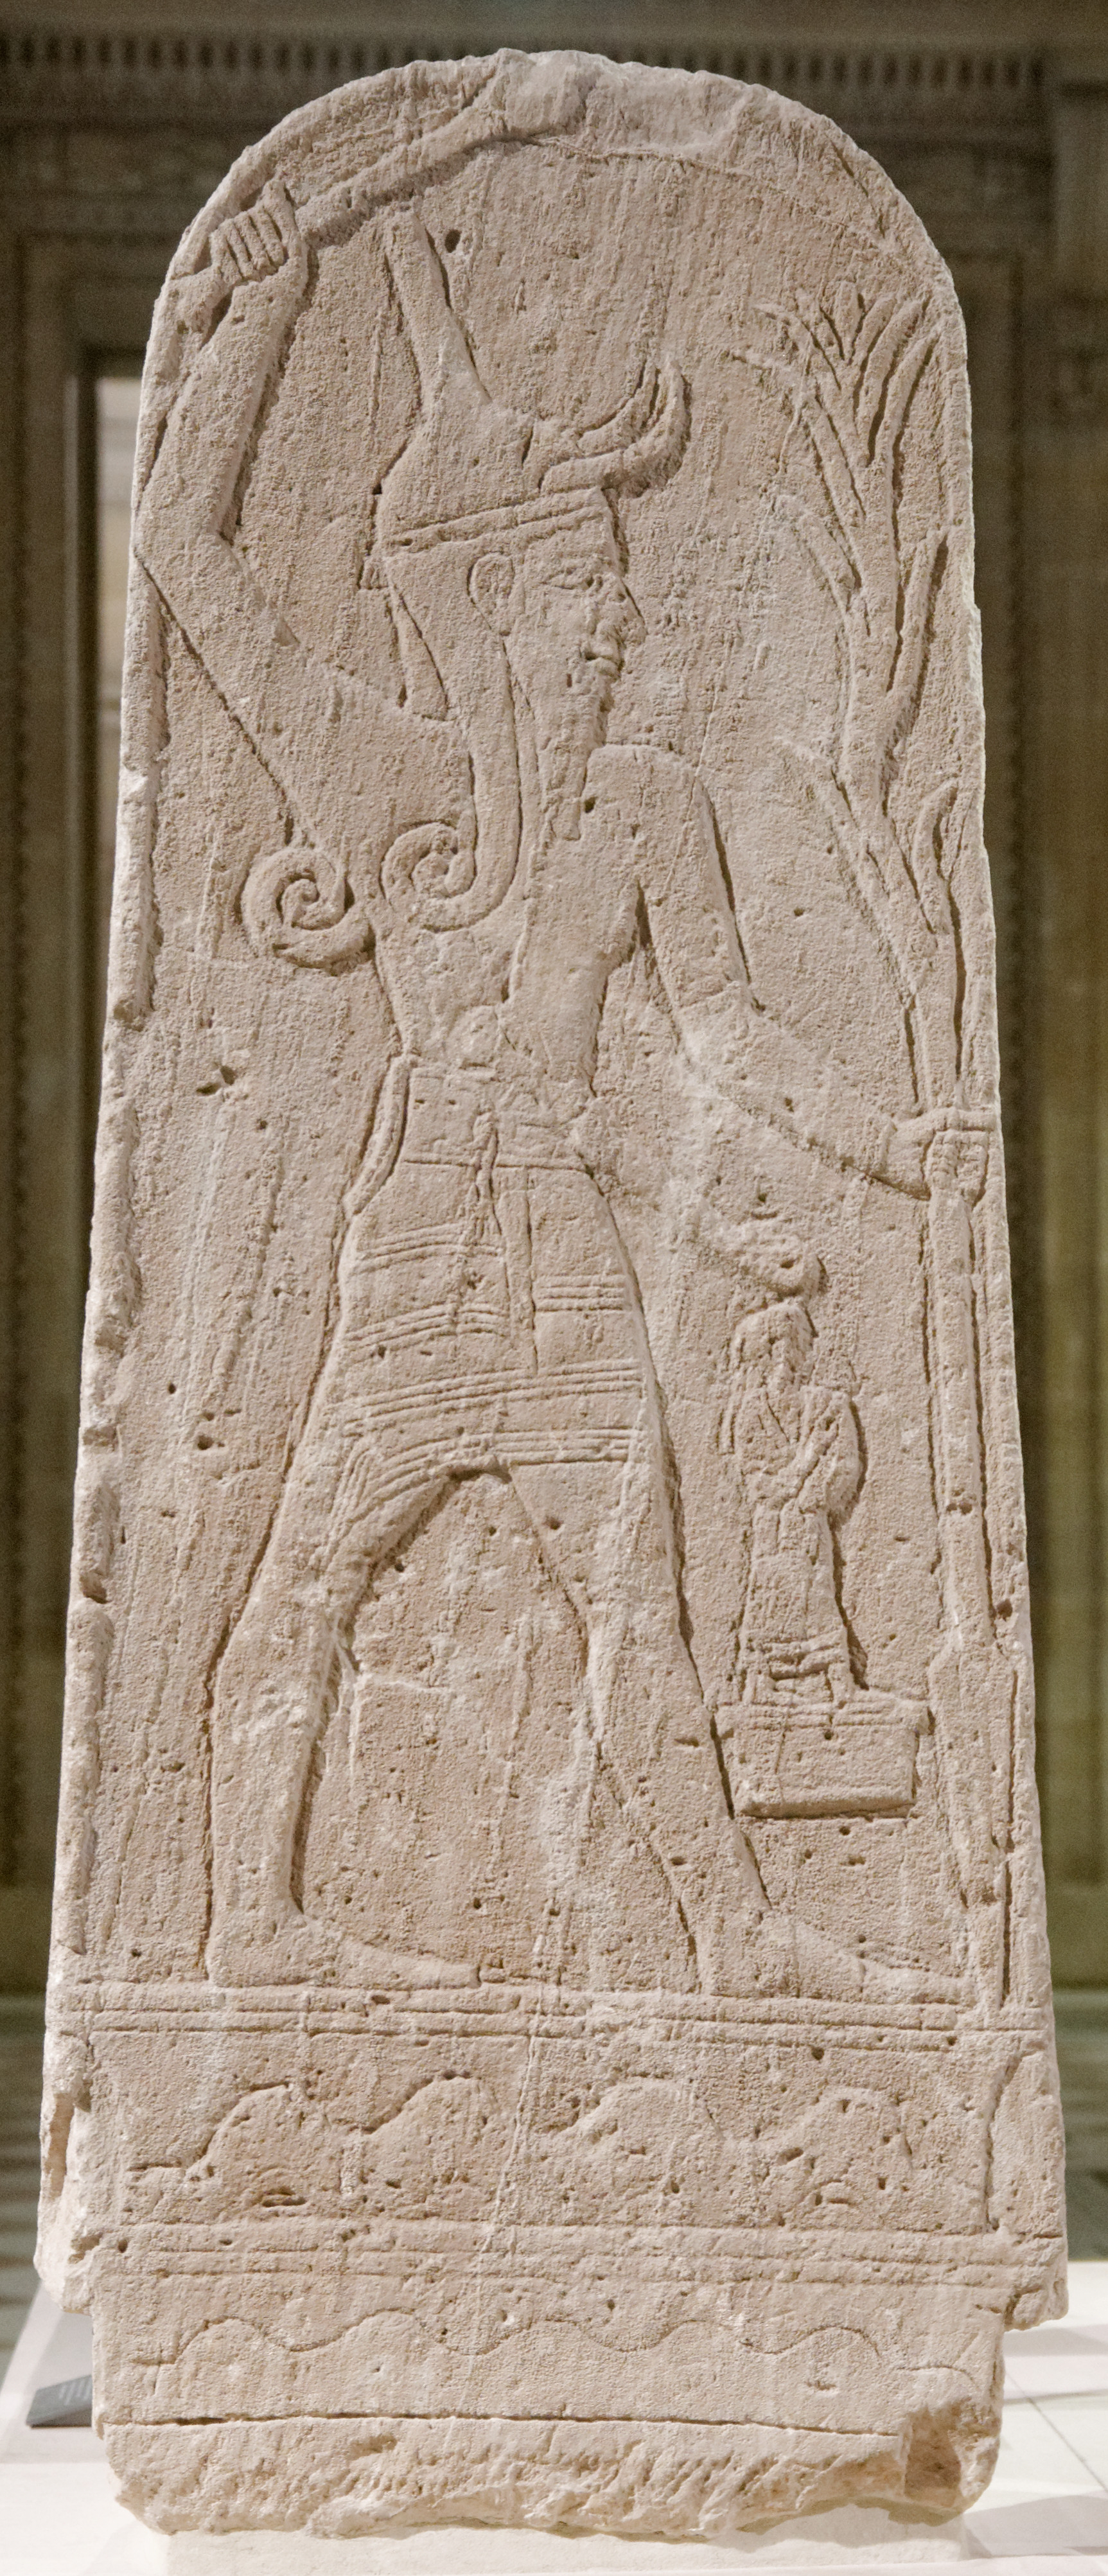 galle vase value of stele wikipedia with regard to baal with thunderbolt c 14th century bc a ugaritic stele from syria